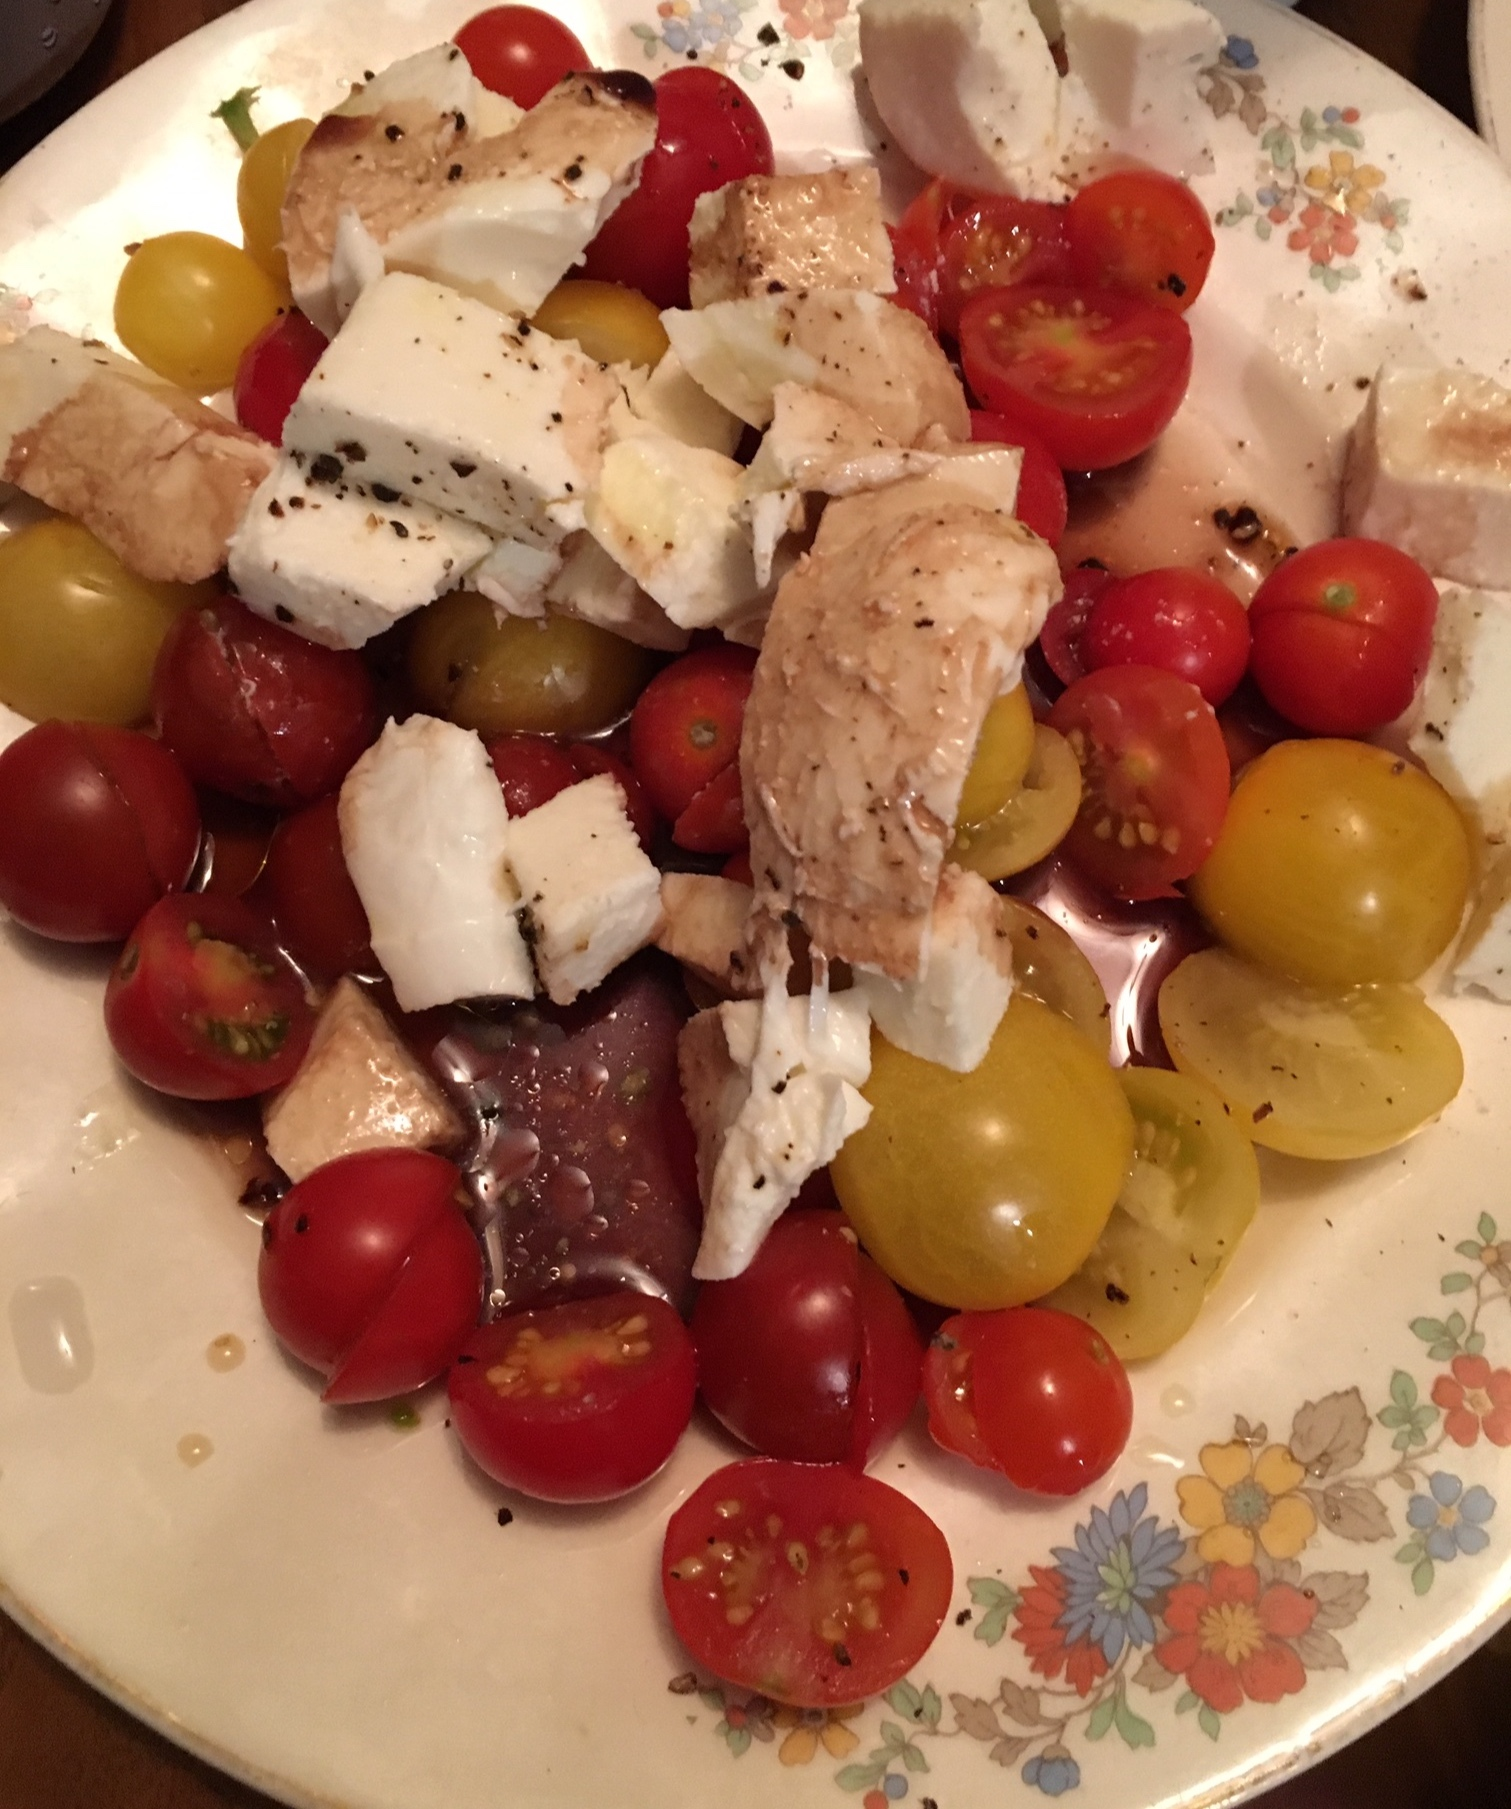 Tomatoes and mozz with balsamic. Our favorite Summer meal.